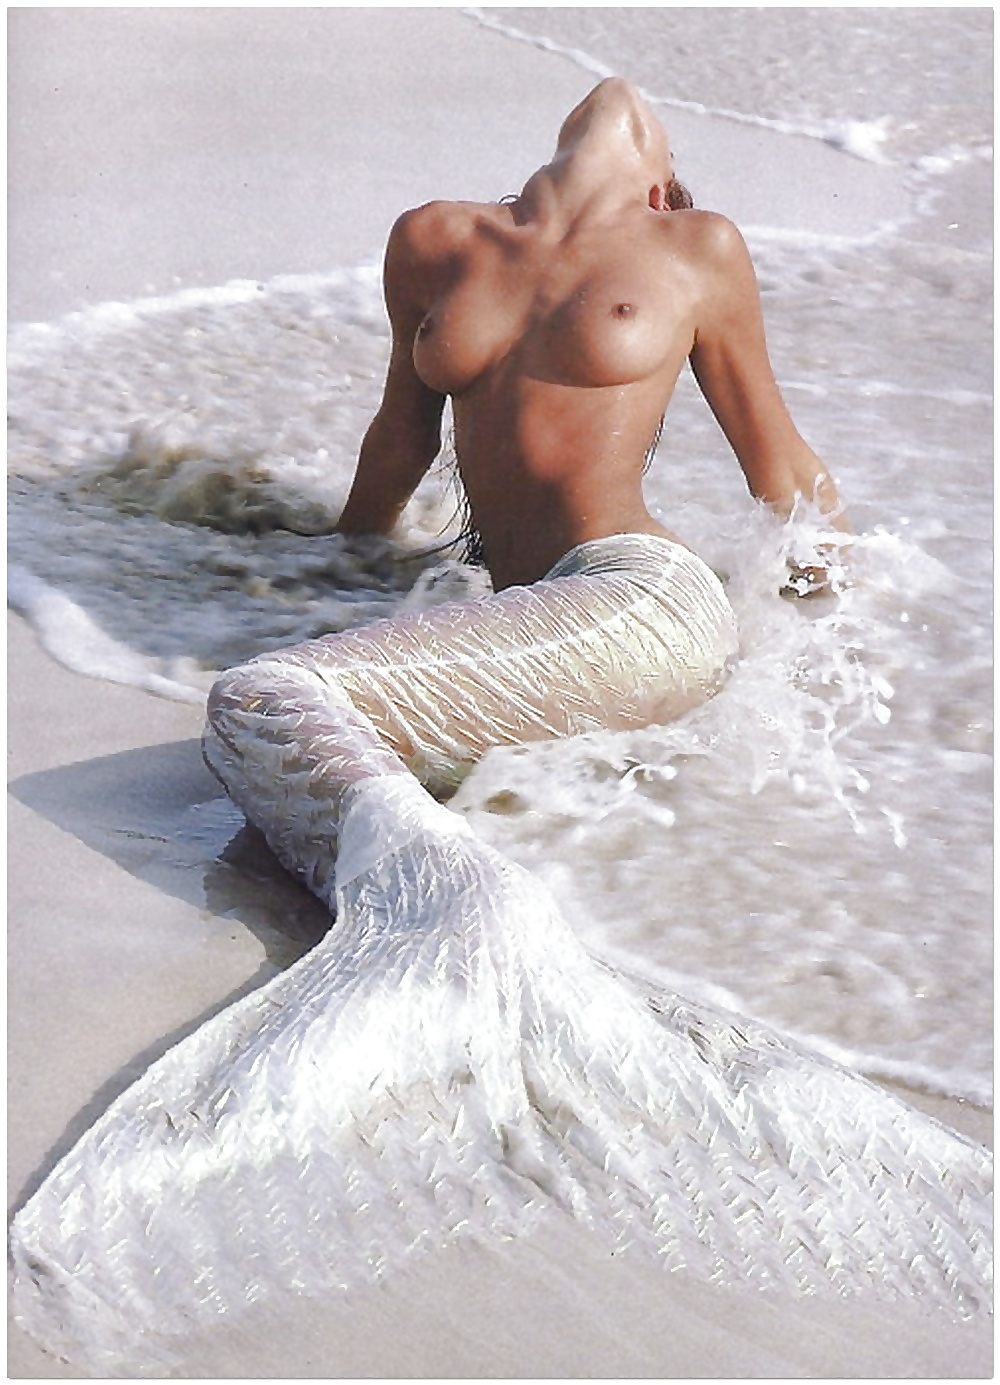 Naked pictures of mermaids 8